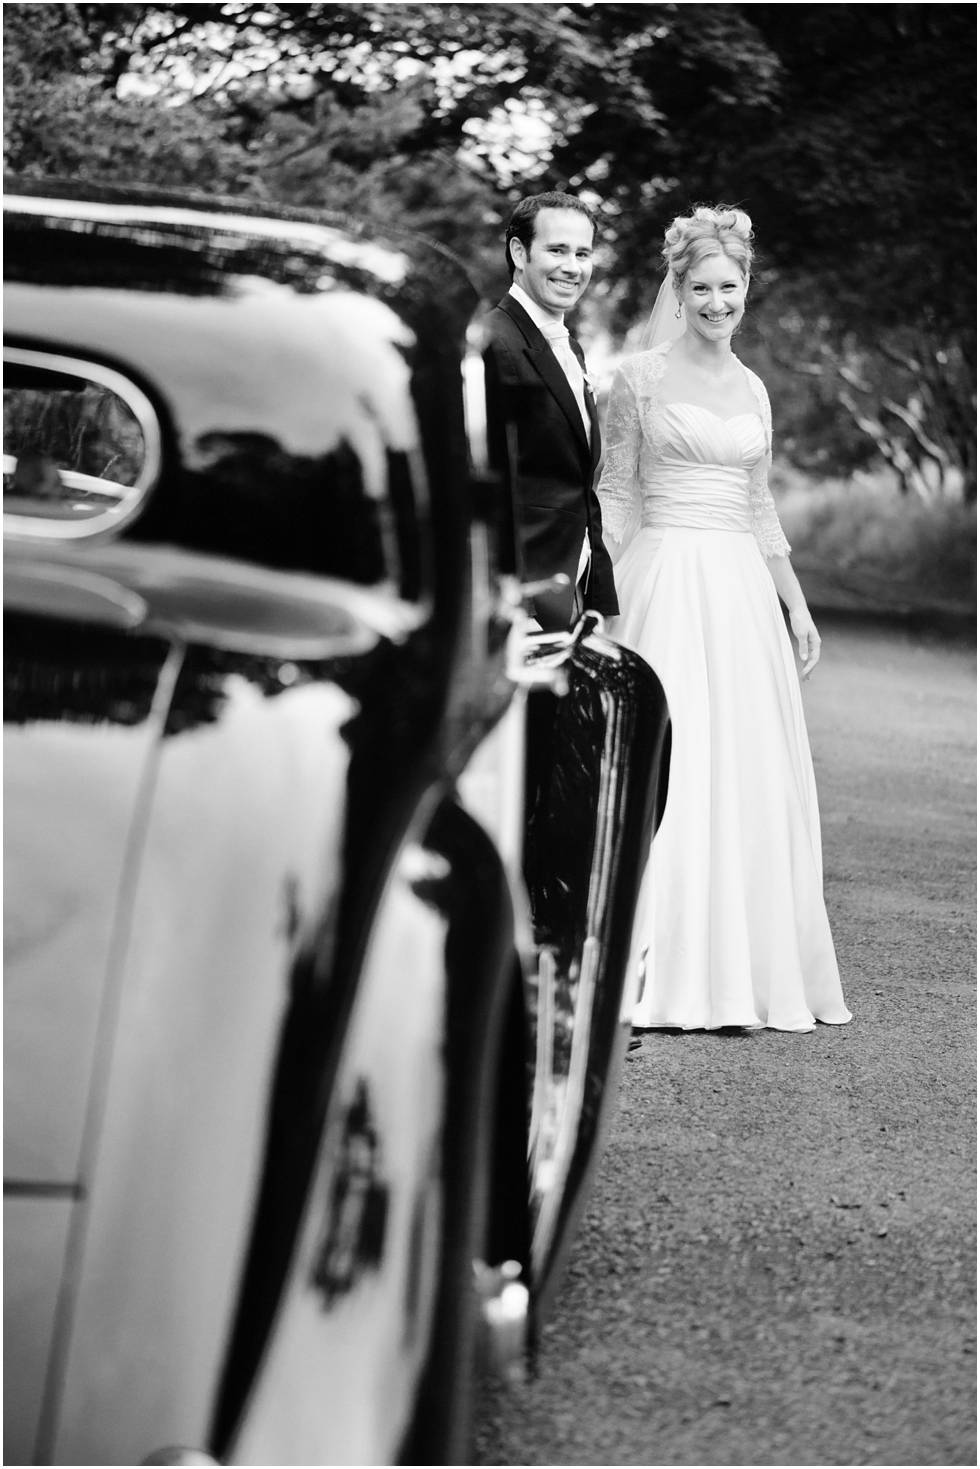 Gosford-House-wedding-photography-East-Lothian-30.jpg